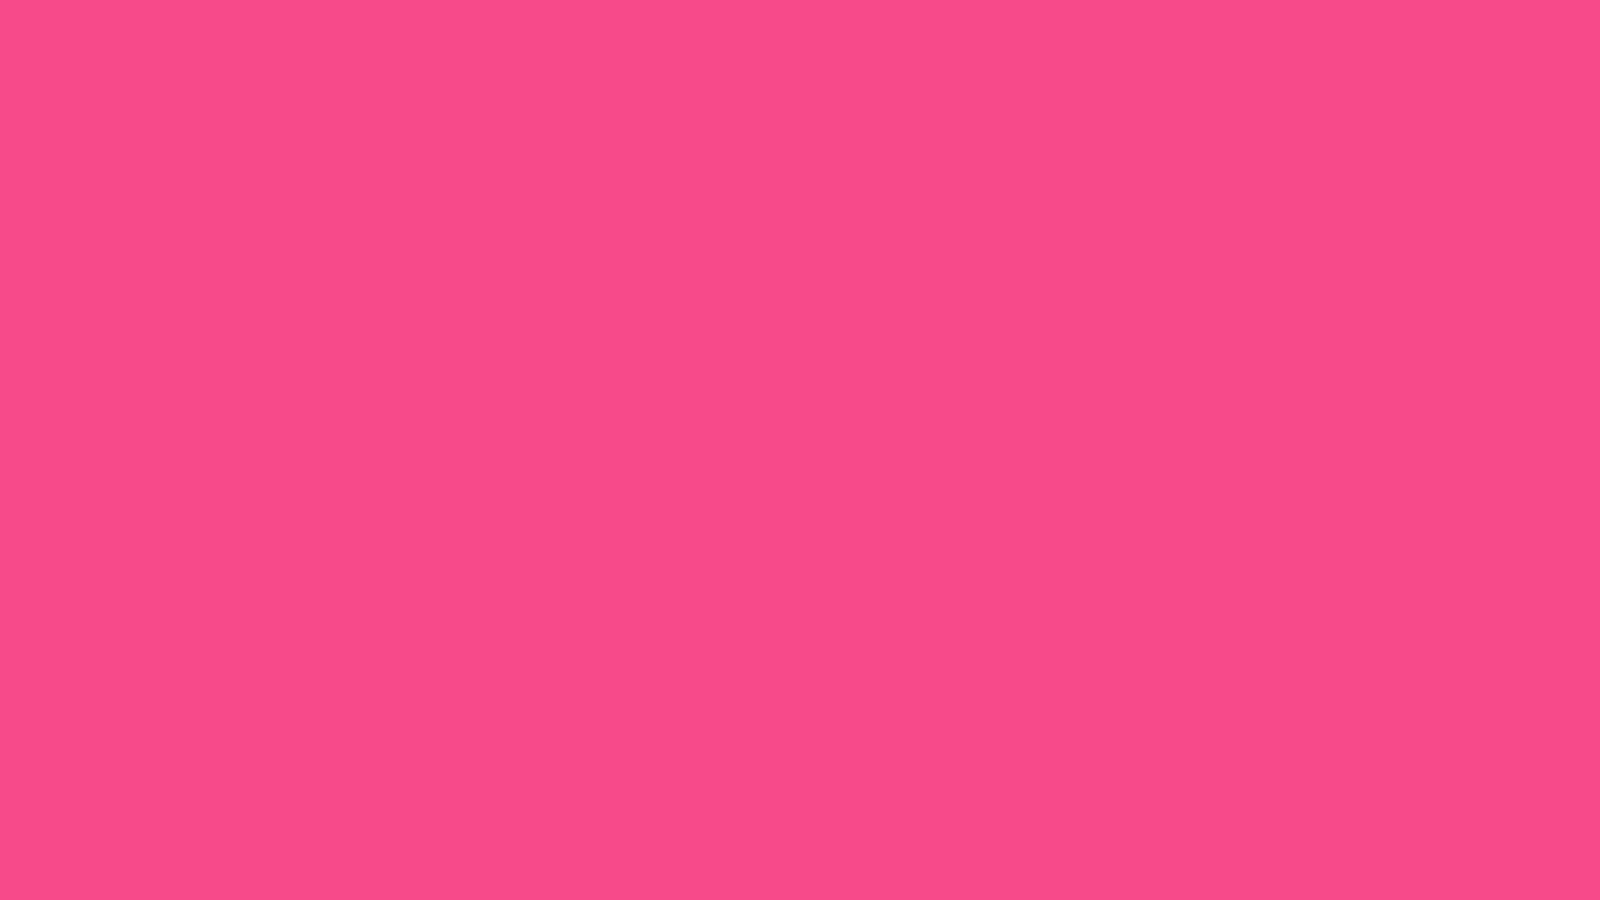 1600x900 French Rose Solid Color Background